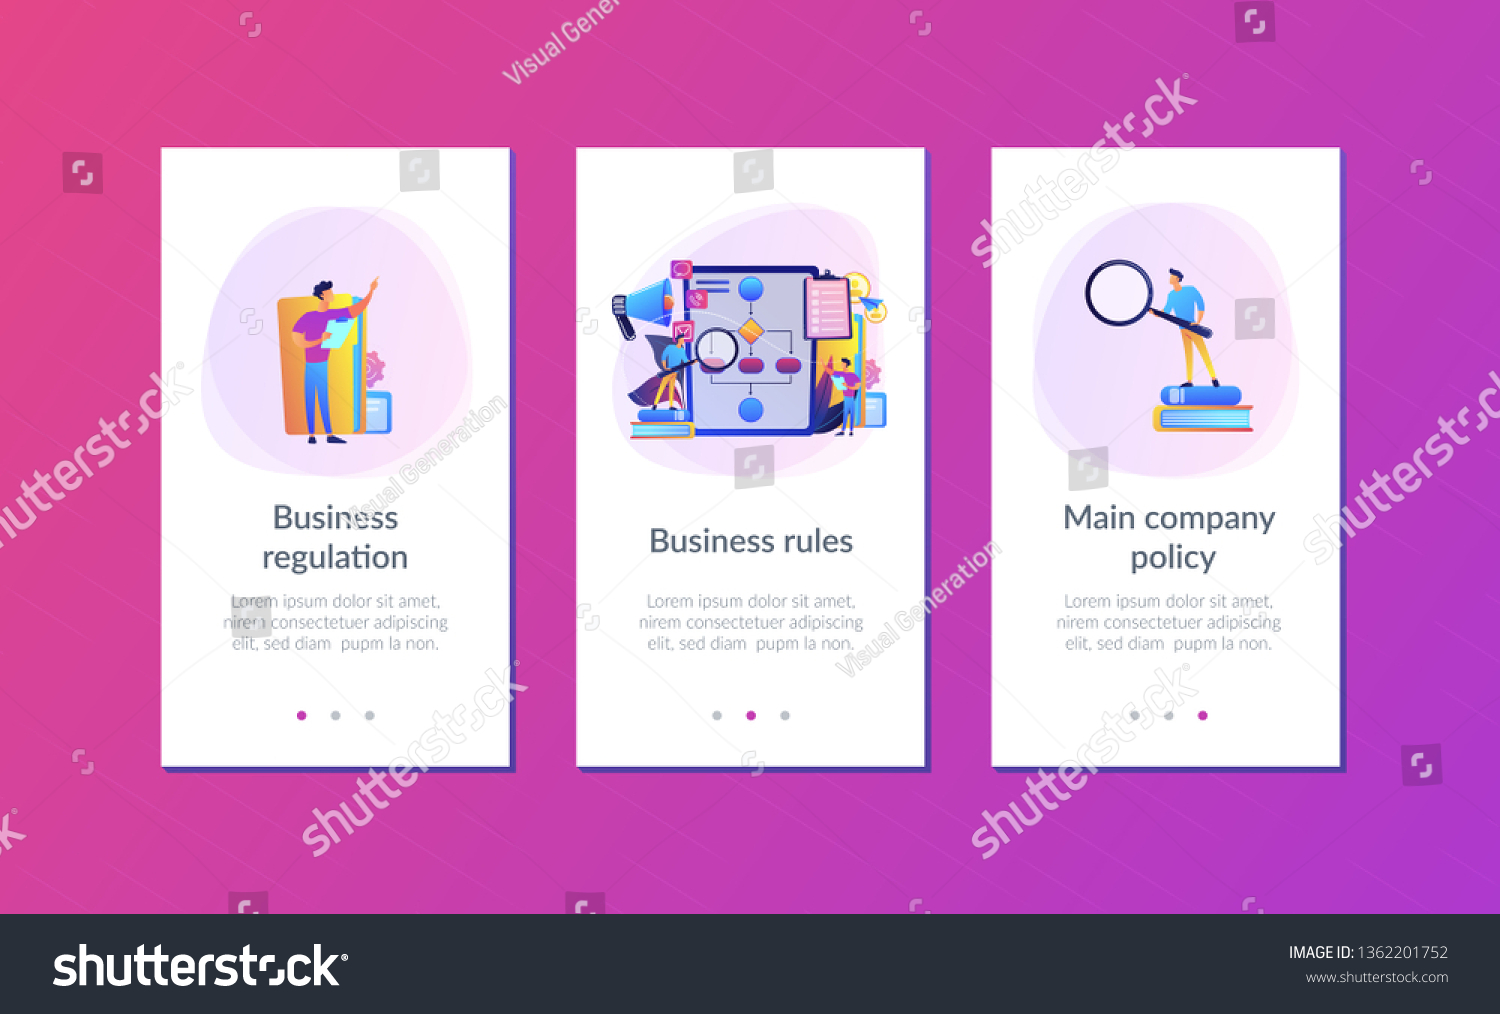 hight resolution of businessmen with magnifier looking at business process flow chart business rules and regulation main